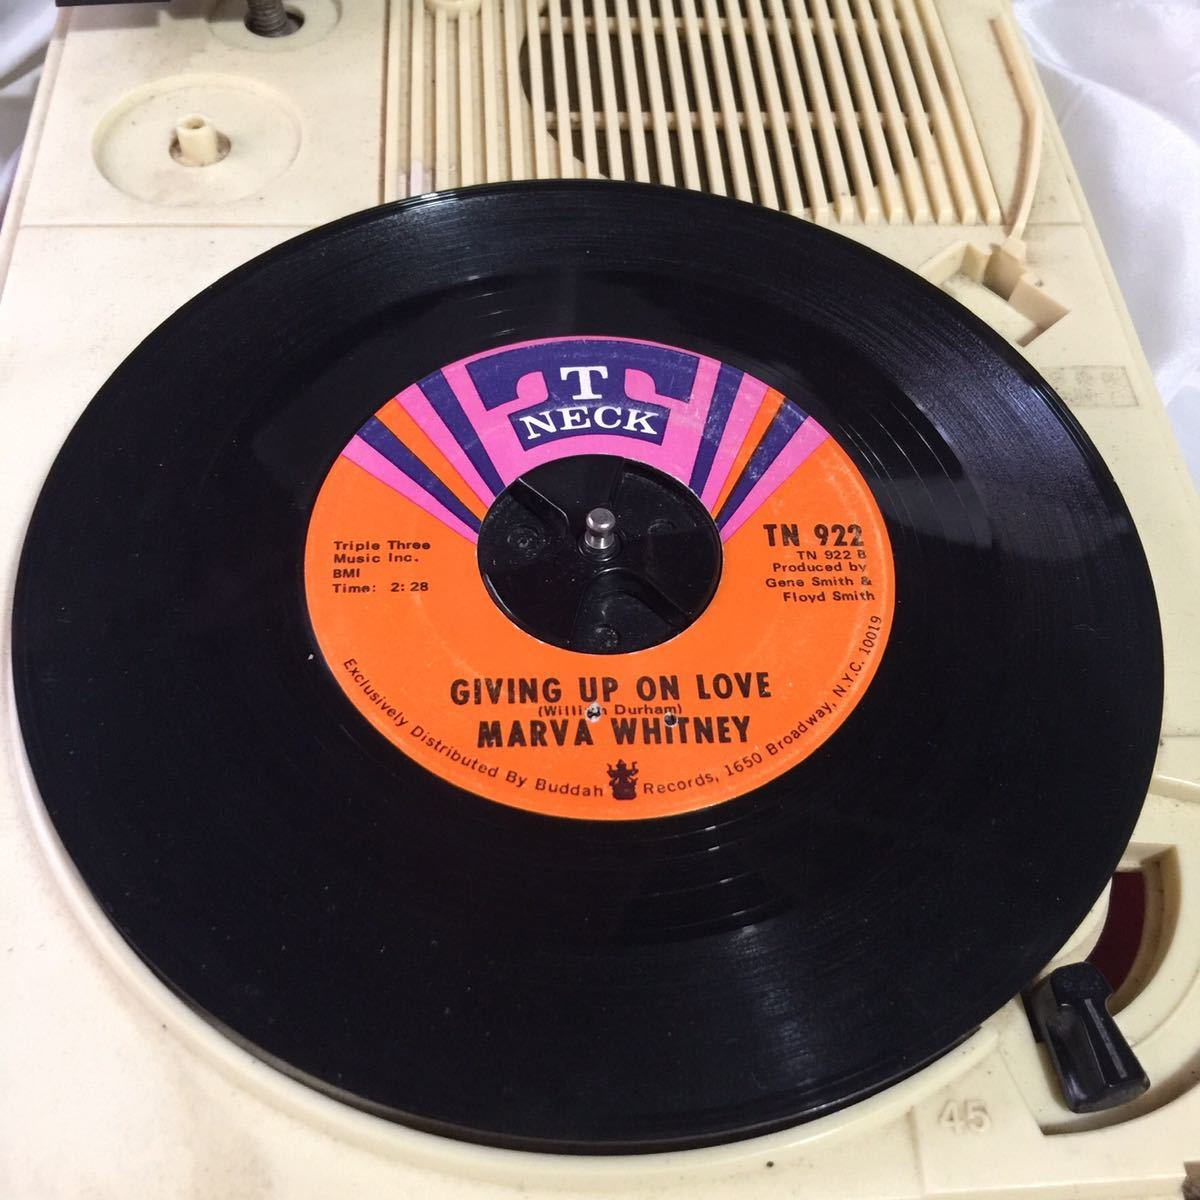 james brown のファミリーの中で 問答無用の激入手困難盤 Marva Whitney Giving Up On Love/This Is My Quest